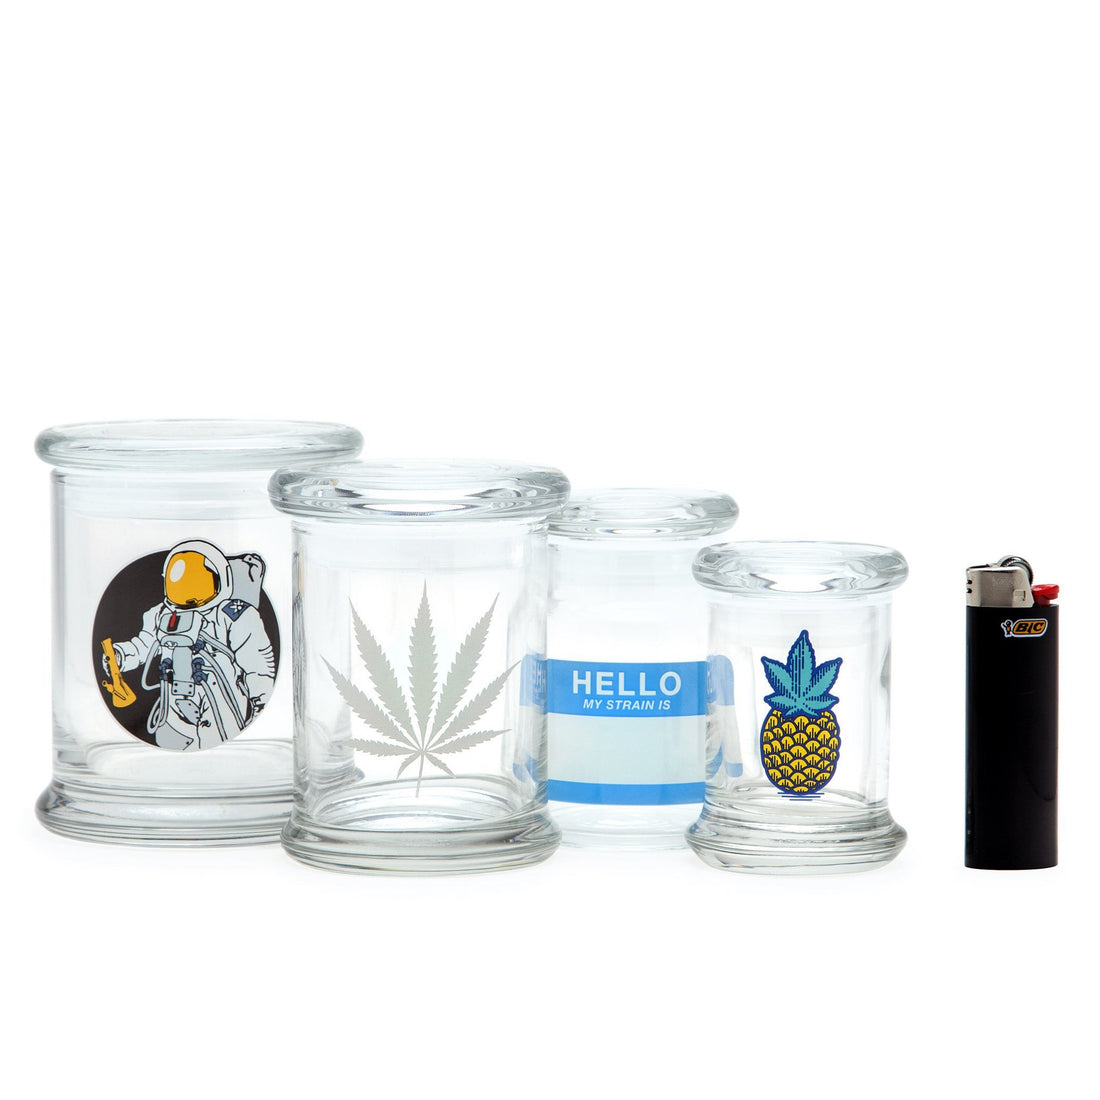 X-Small Pop-Top - The Good Weed - 420 Science - The most trusted online smoke shop.